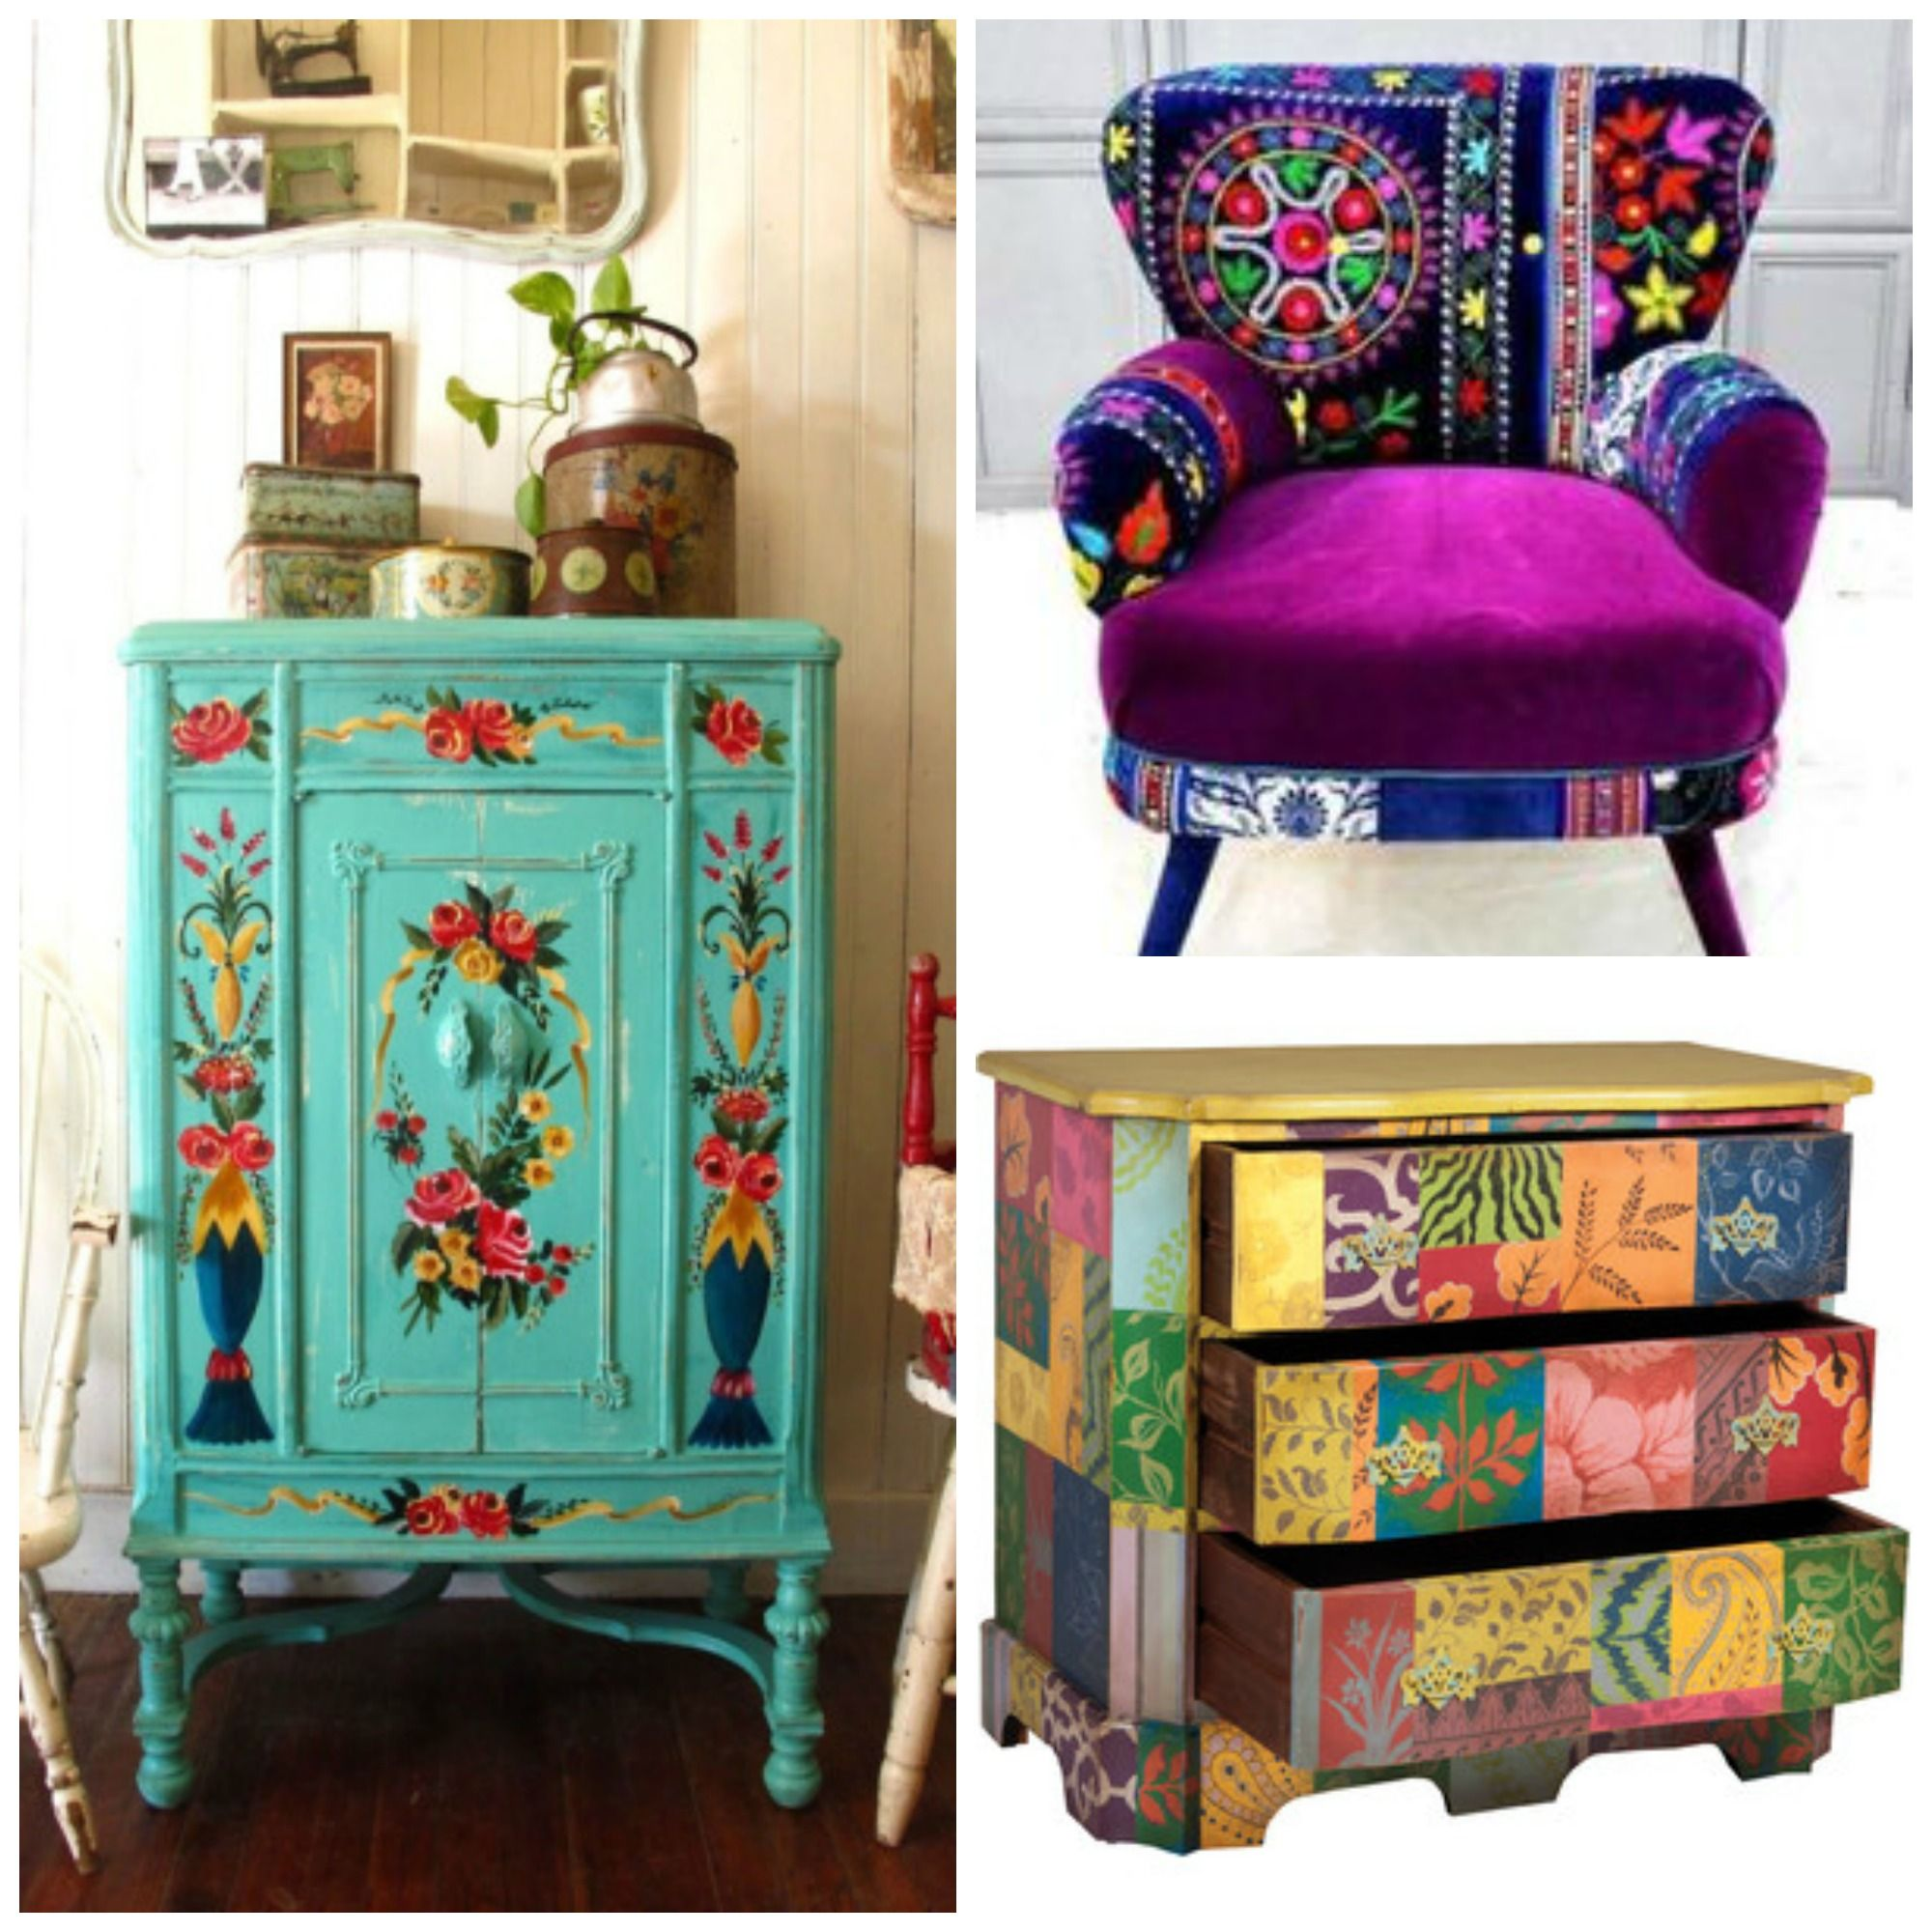 Hippie Home Decor: Bohemian Interior, Bohemian Decor Style .